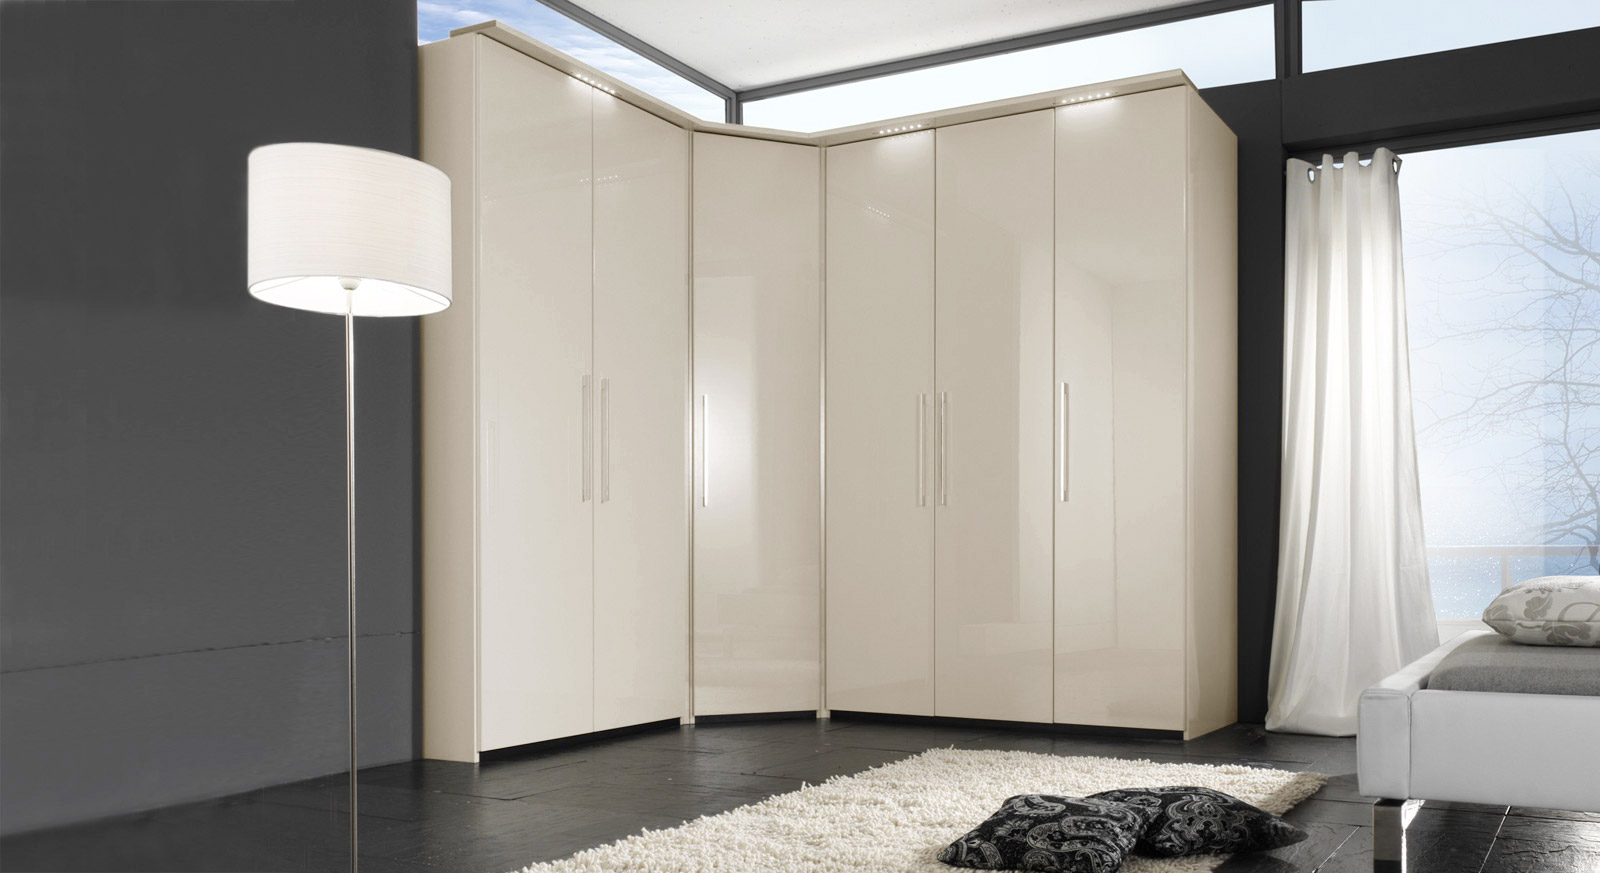 eckkleiderschrank m bel einebinsenweisheit. Black Bedroom Furniture Sets. Home Design Ideas